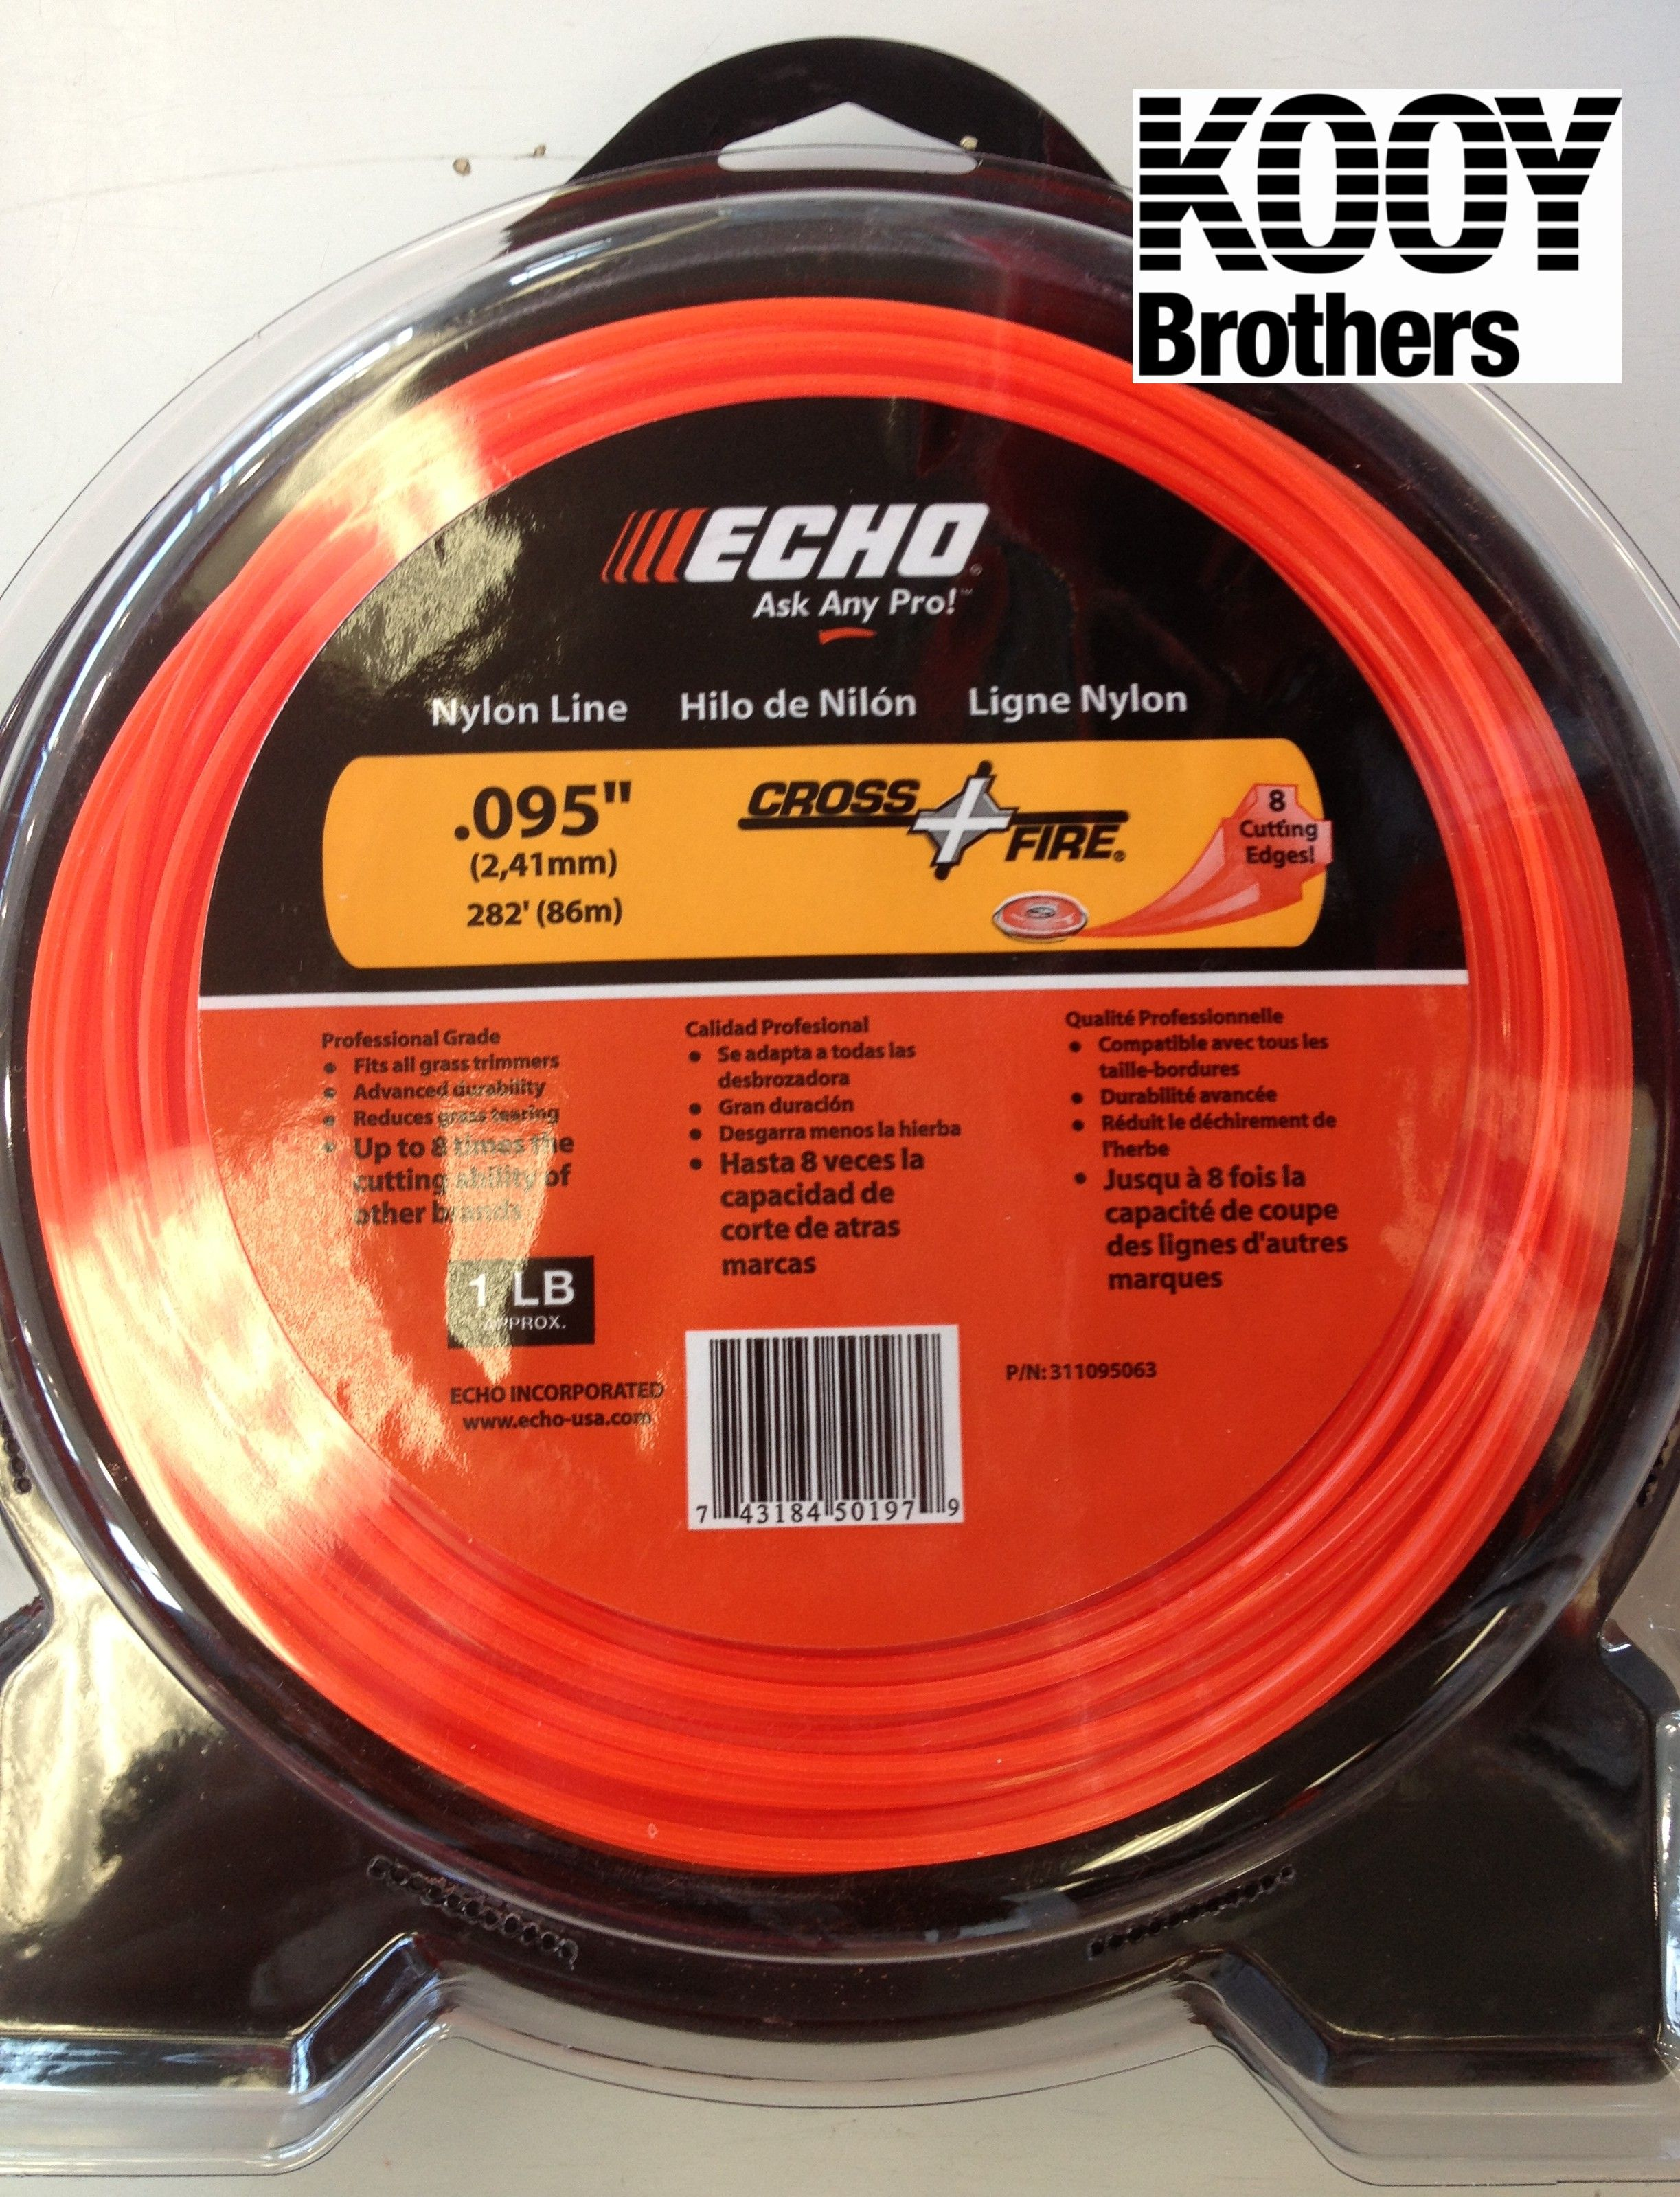 ECHO .095 Replacement Trimmer Line 1lb roll